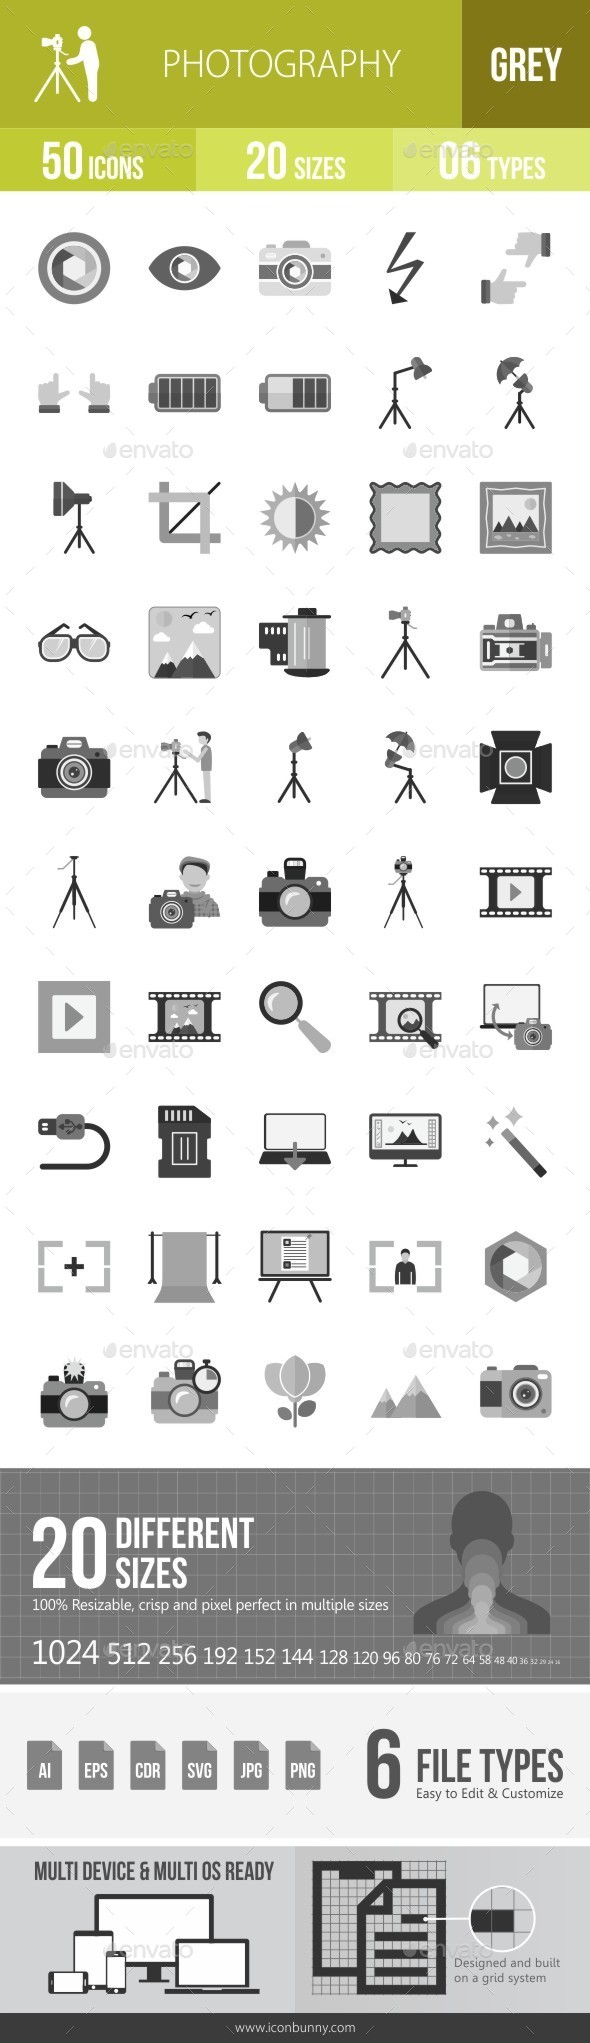 Photography Greyscale Icons - Icons